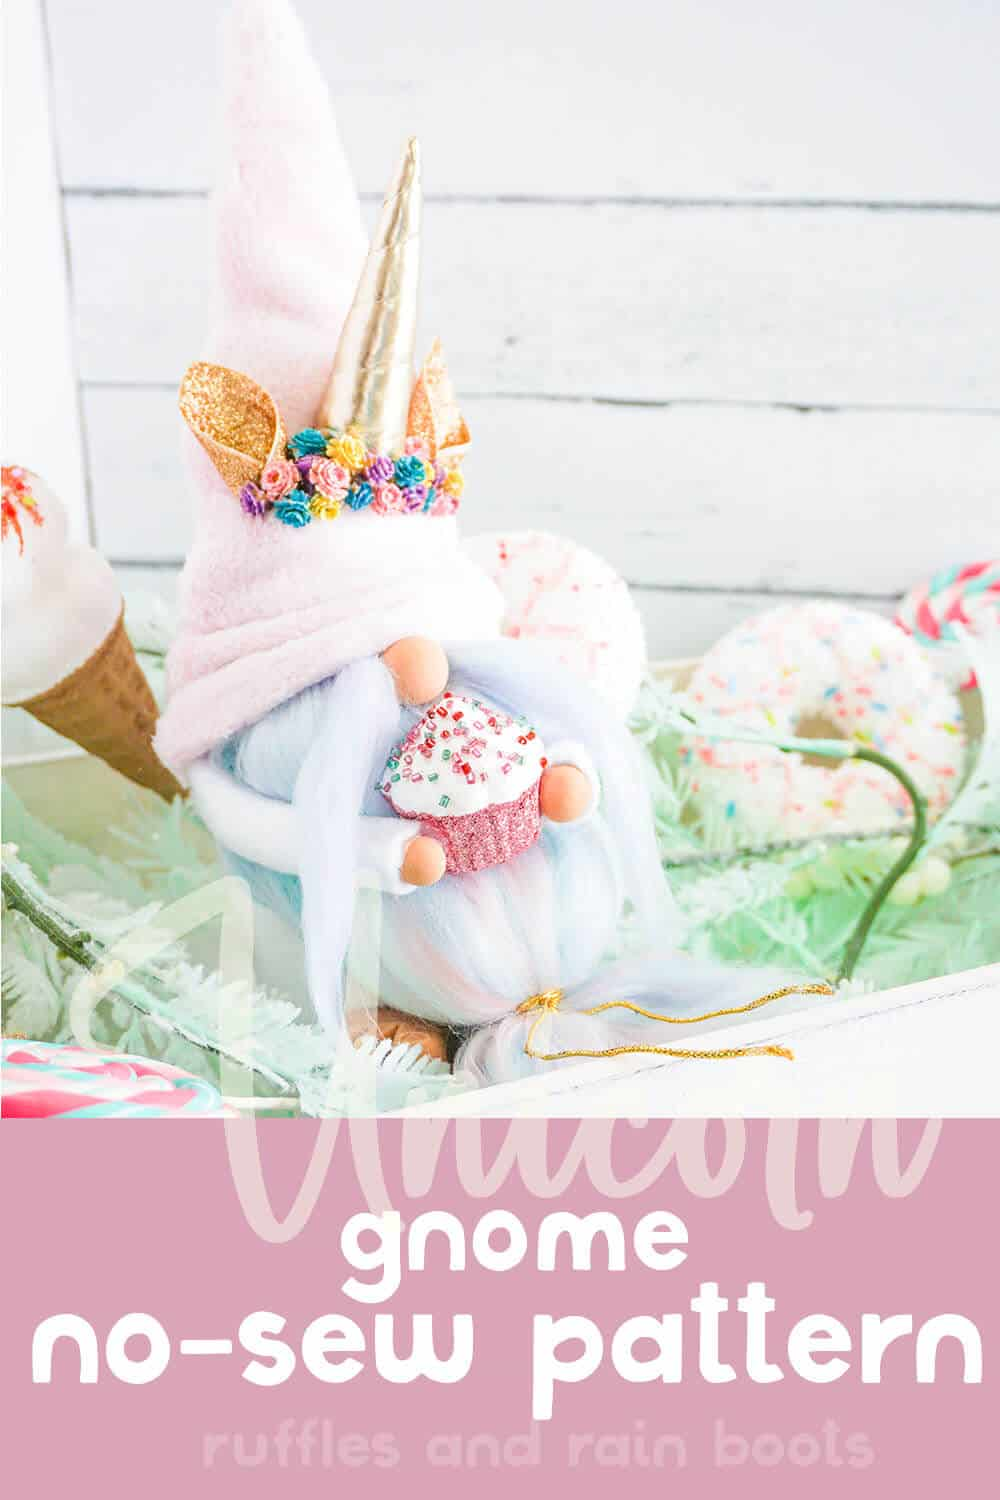 easy pattern for a spring gnome with a unicorn horn with text which reads unicorn gnome no-sew pattern